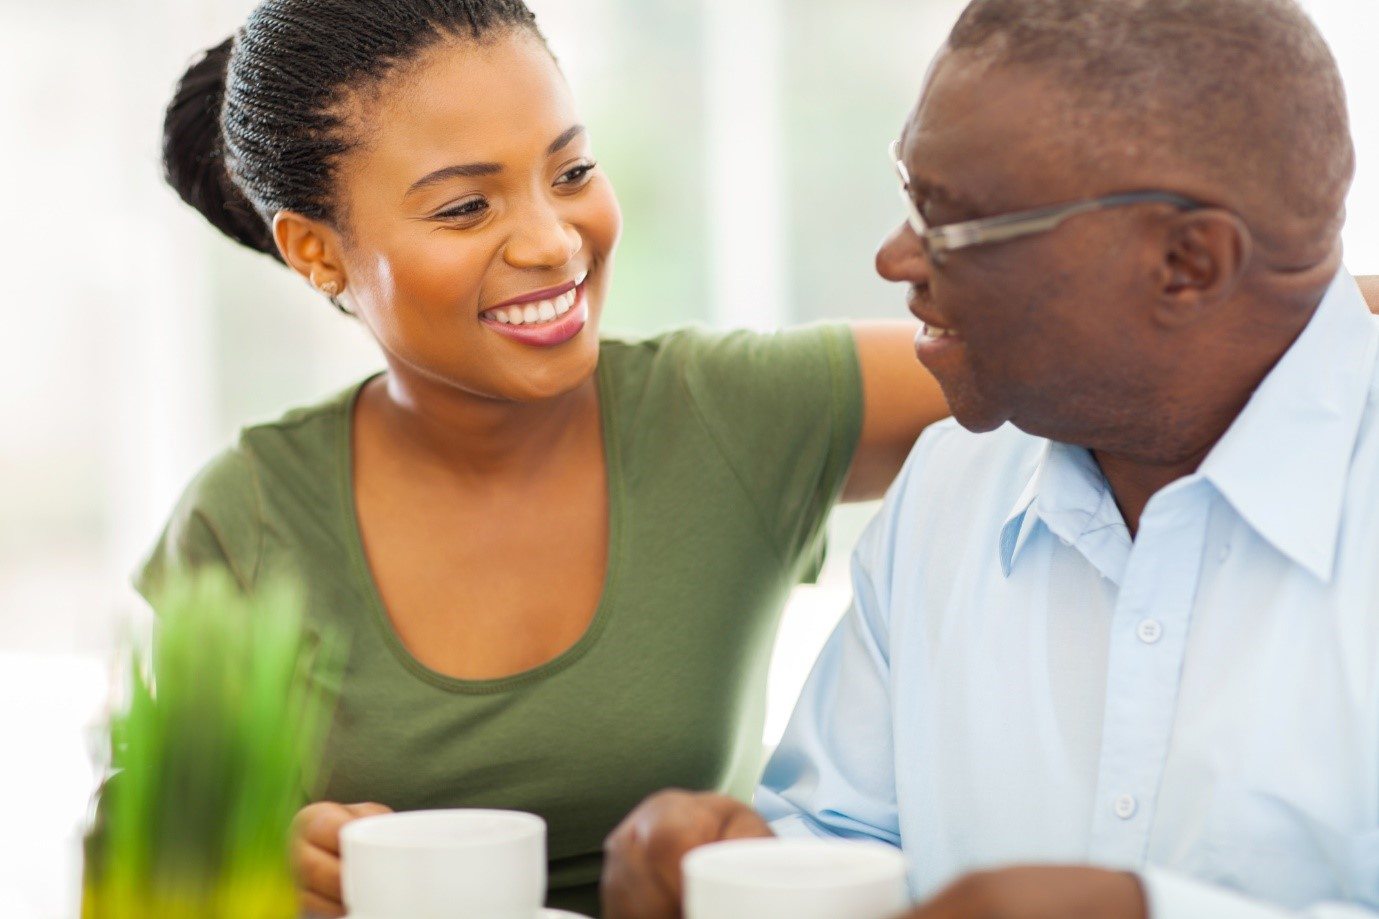 Senior Living Options: The Different Types Explained